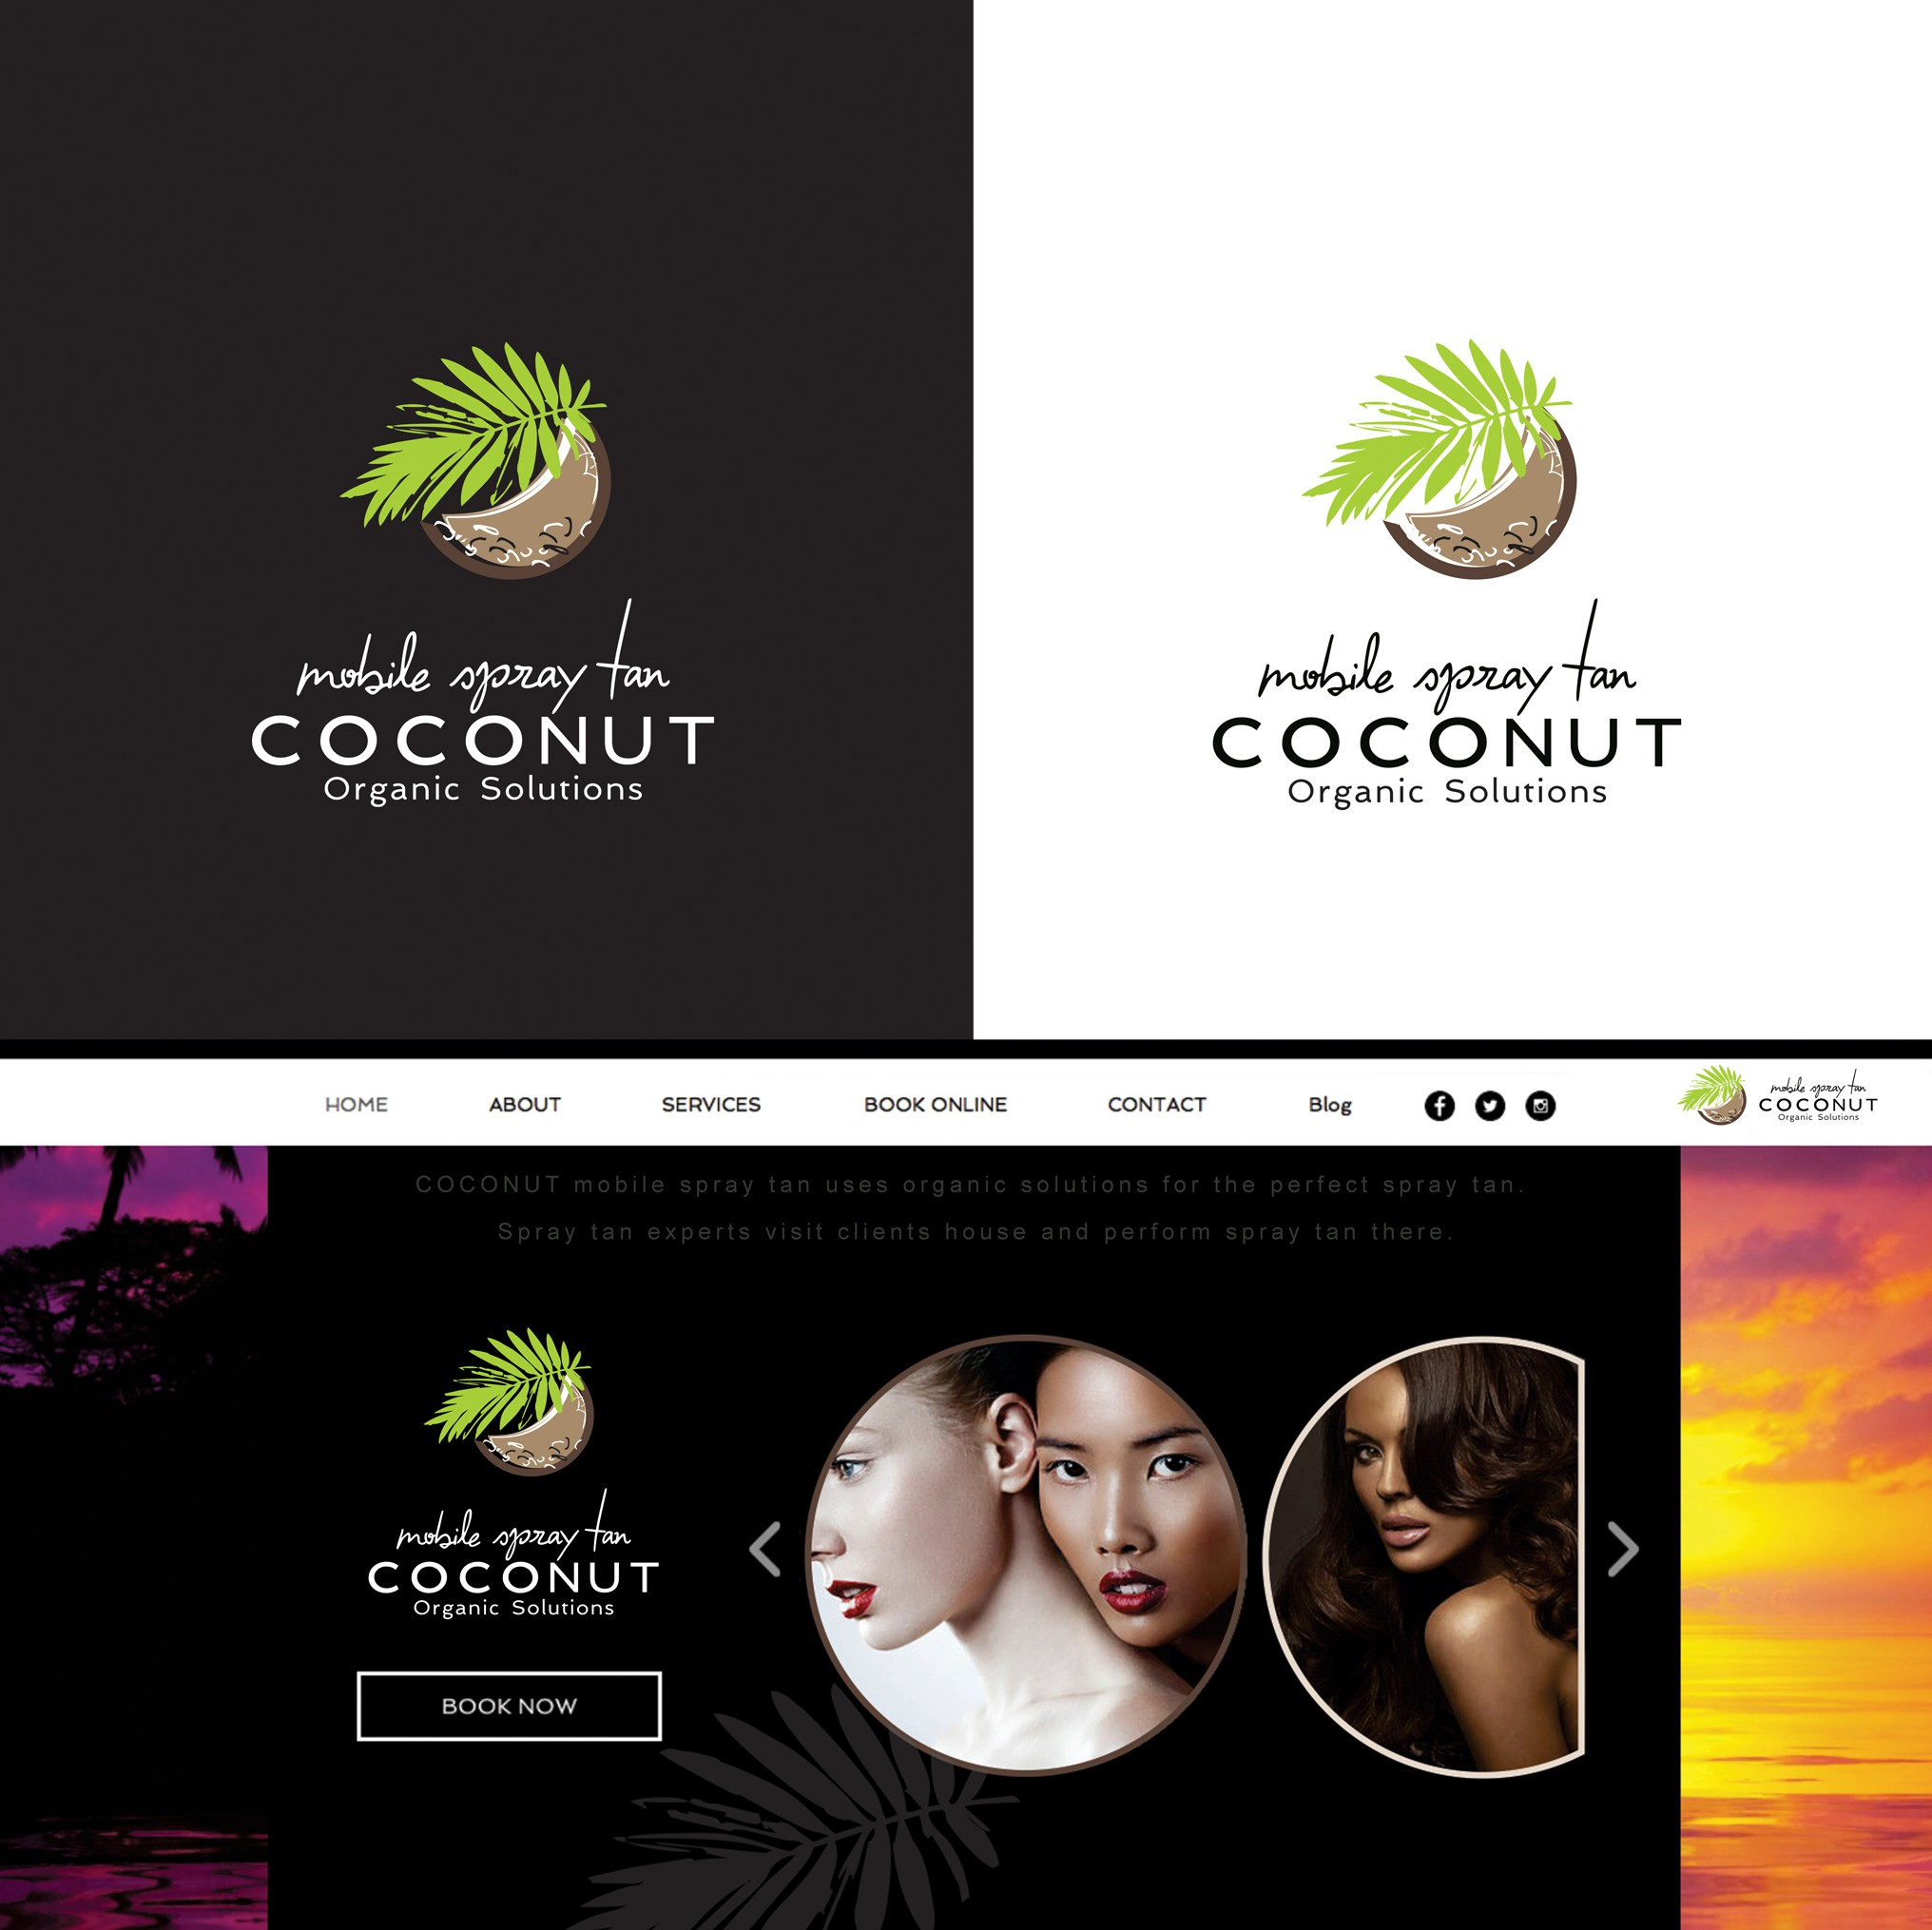 Create an attractive logo for a mobile spray tan business called COCONUT